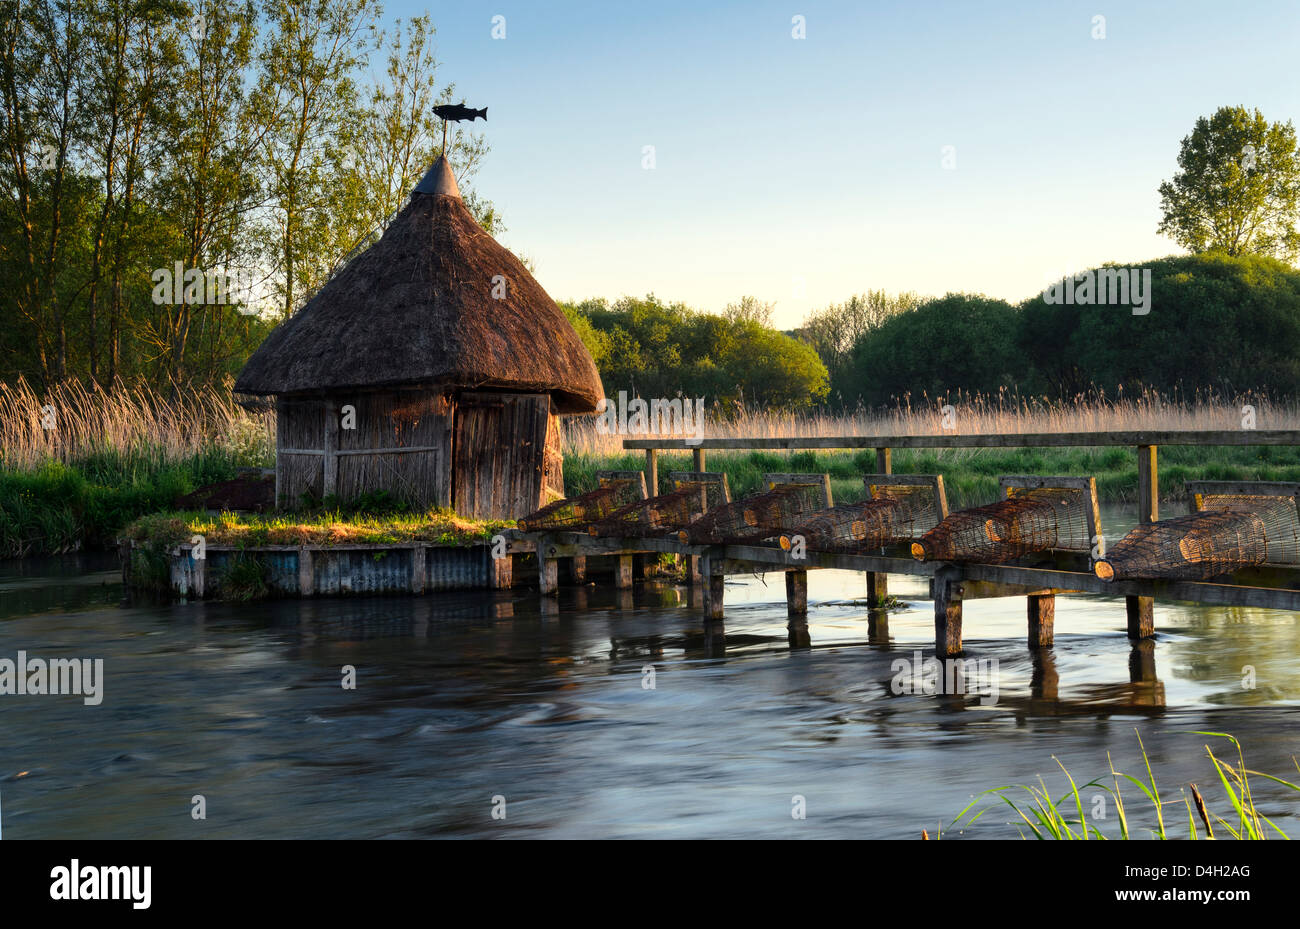 Thatched Fisherman's Hut & Eel traps on the river Test in Hampshire - Stock Image